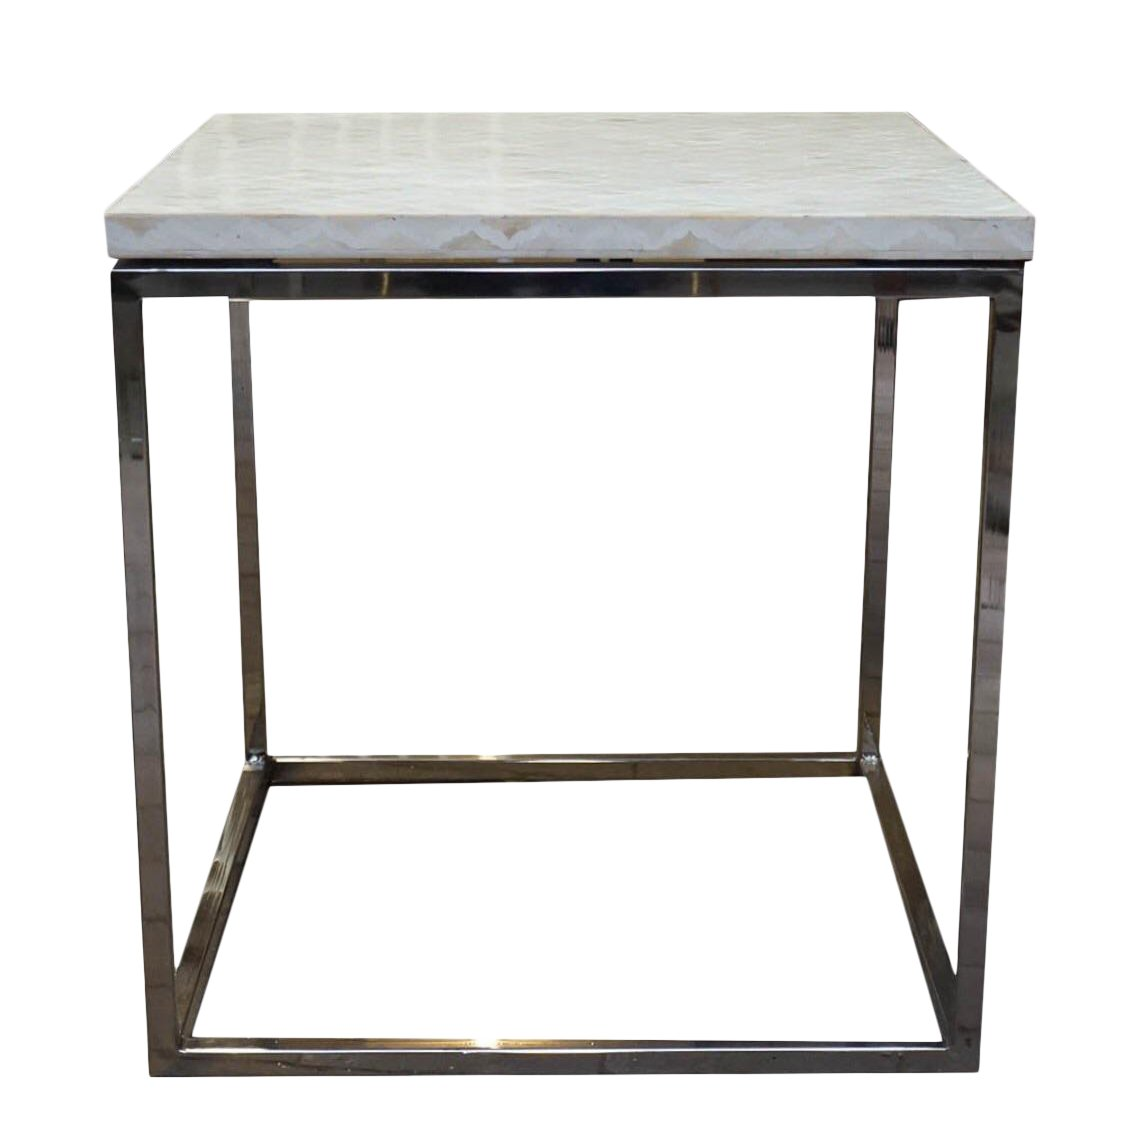 style bone inlay side accent table chairish furniture village victorian end west elm console trestle dining set room wall decor ideas pier one imports narrow with stools storage